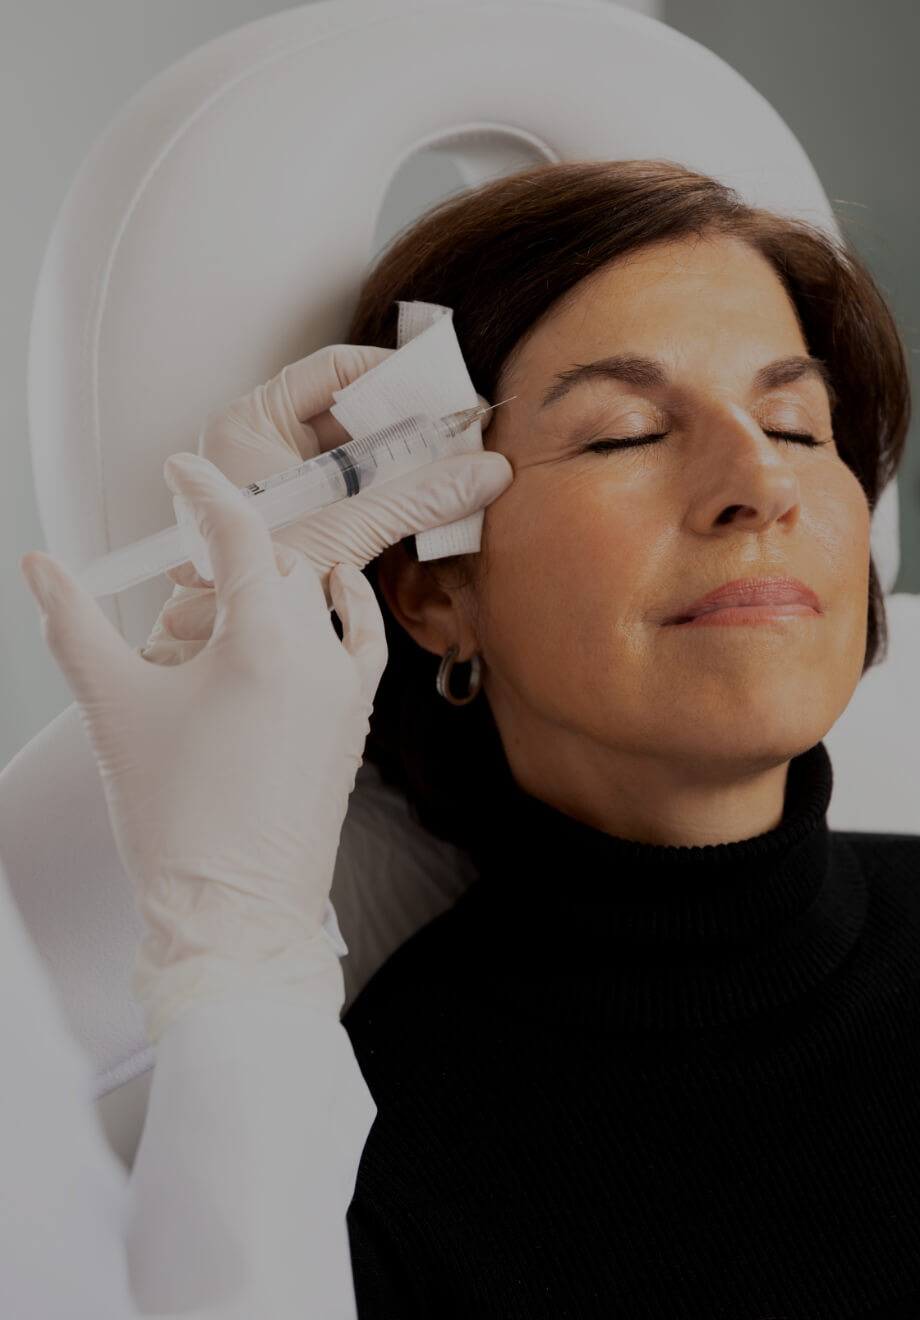 A doctor at Clinique Chloé performing Sculptra injections in a female patient's temples